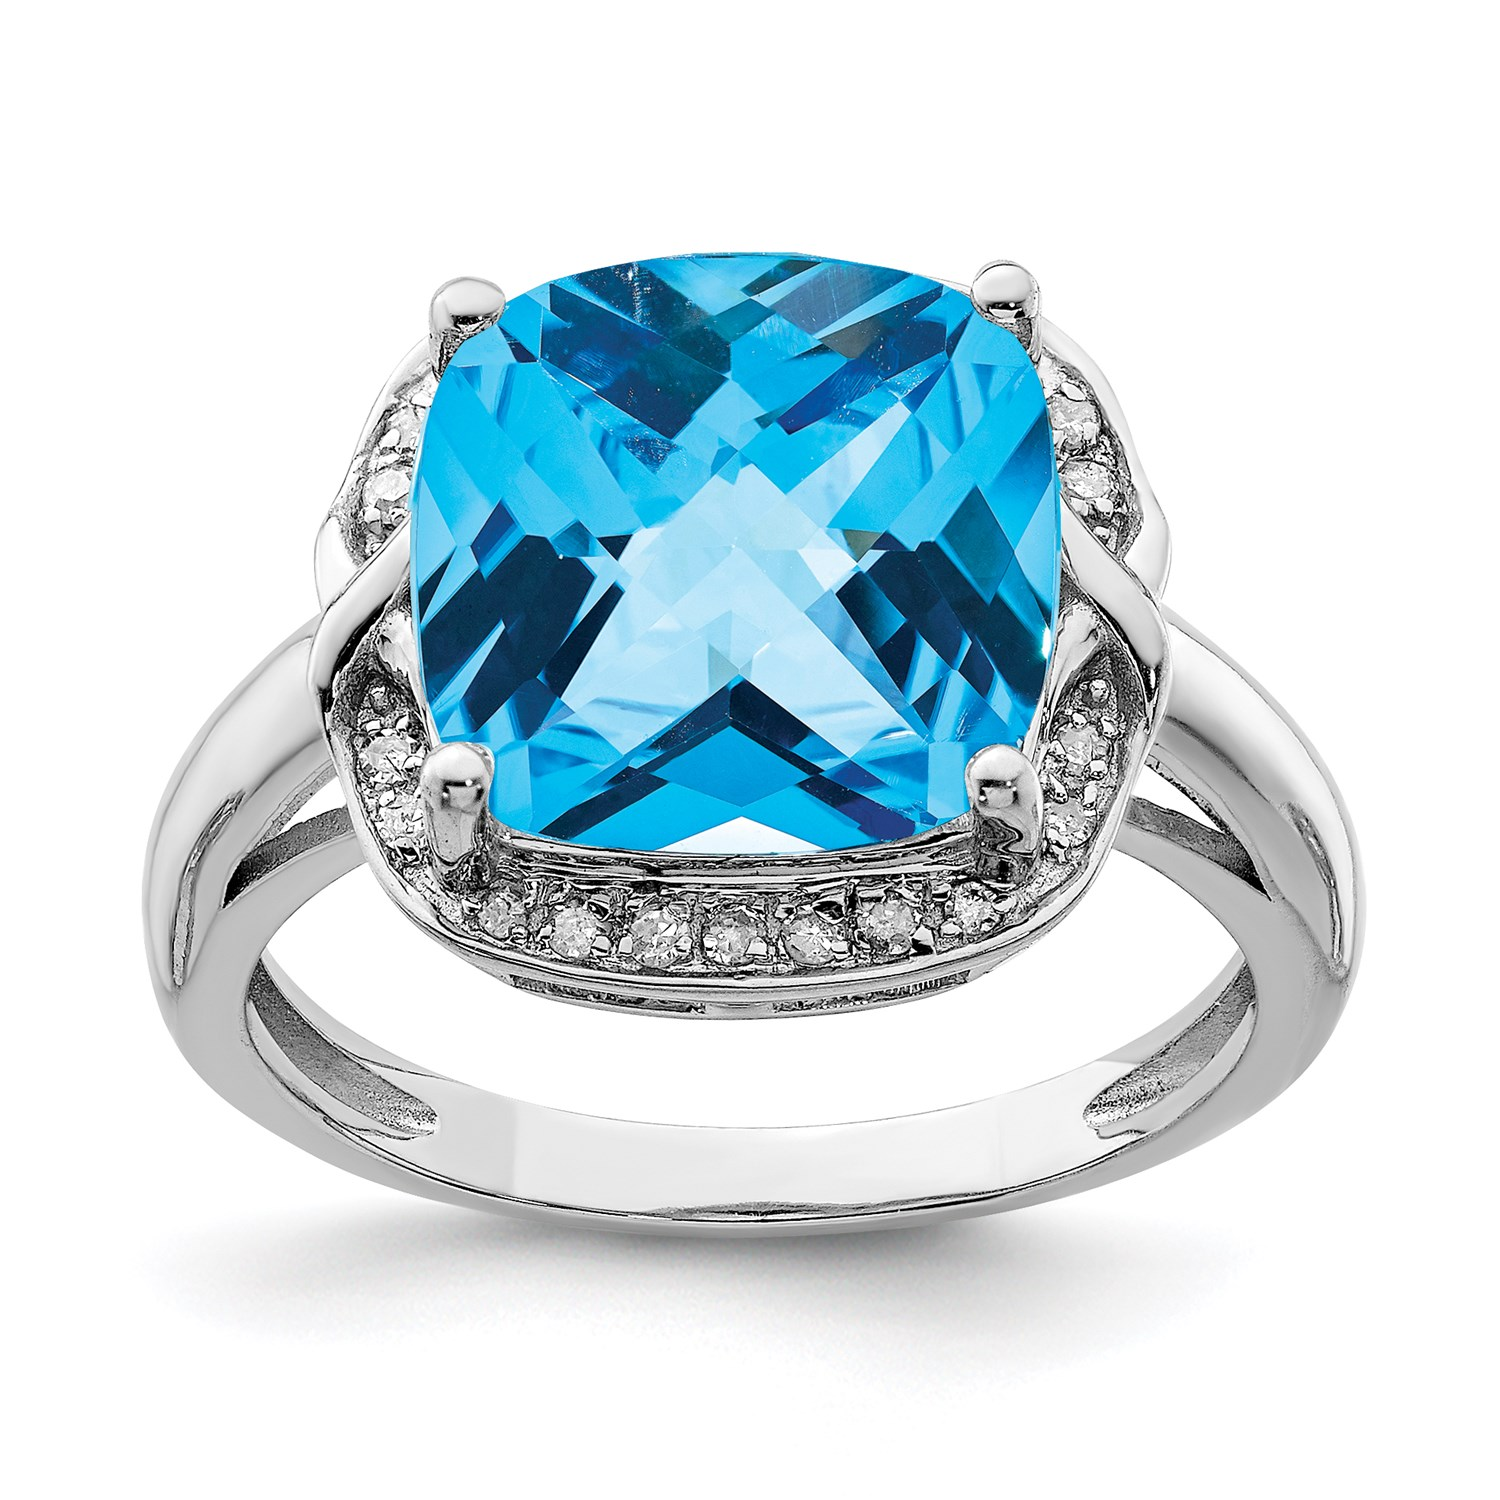 SS Cushion Swiss blueee Topaz & Diamond Ring CT Wt- 6.37ct Met Wt-3.57g